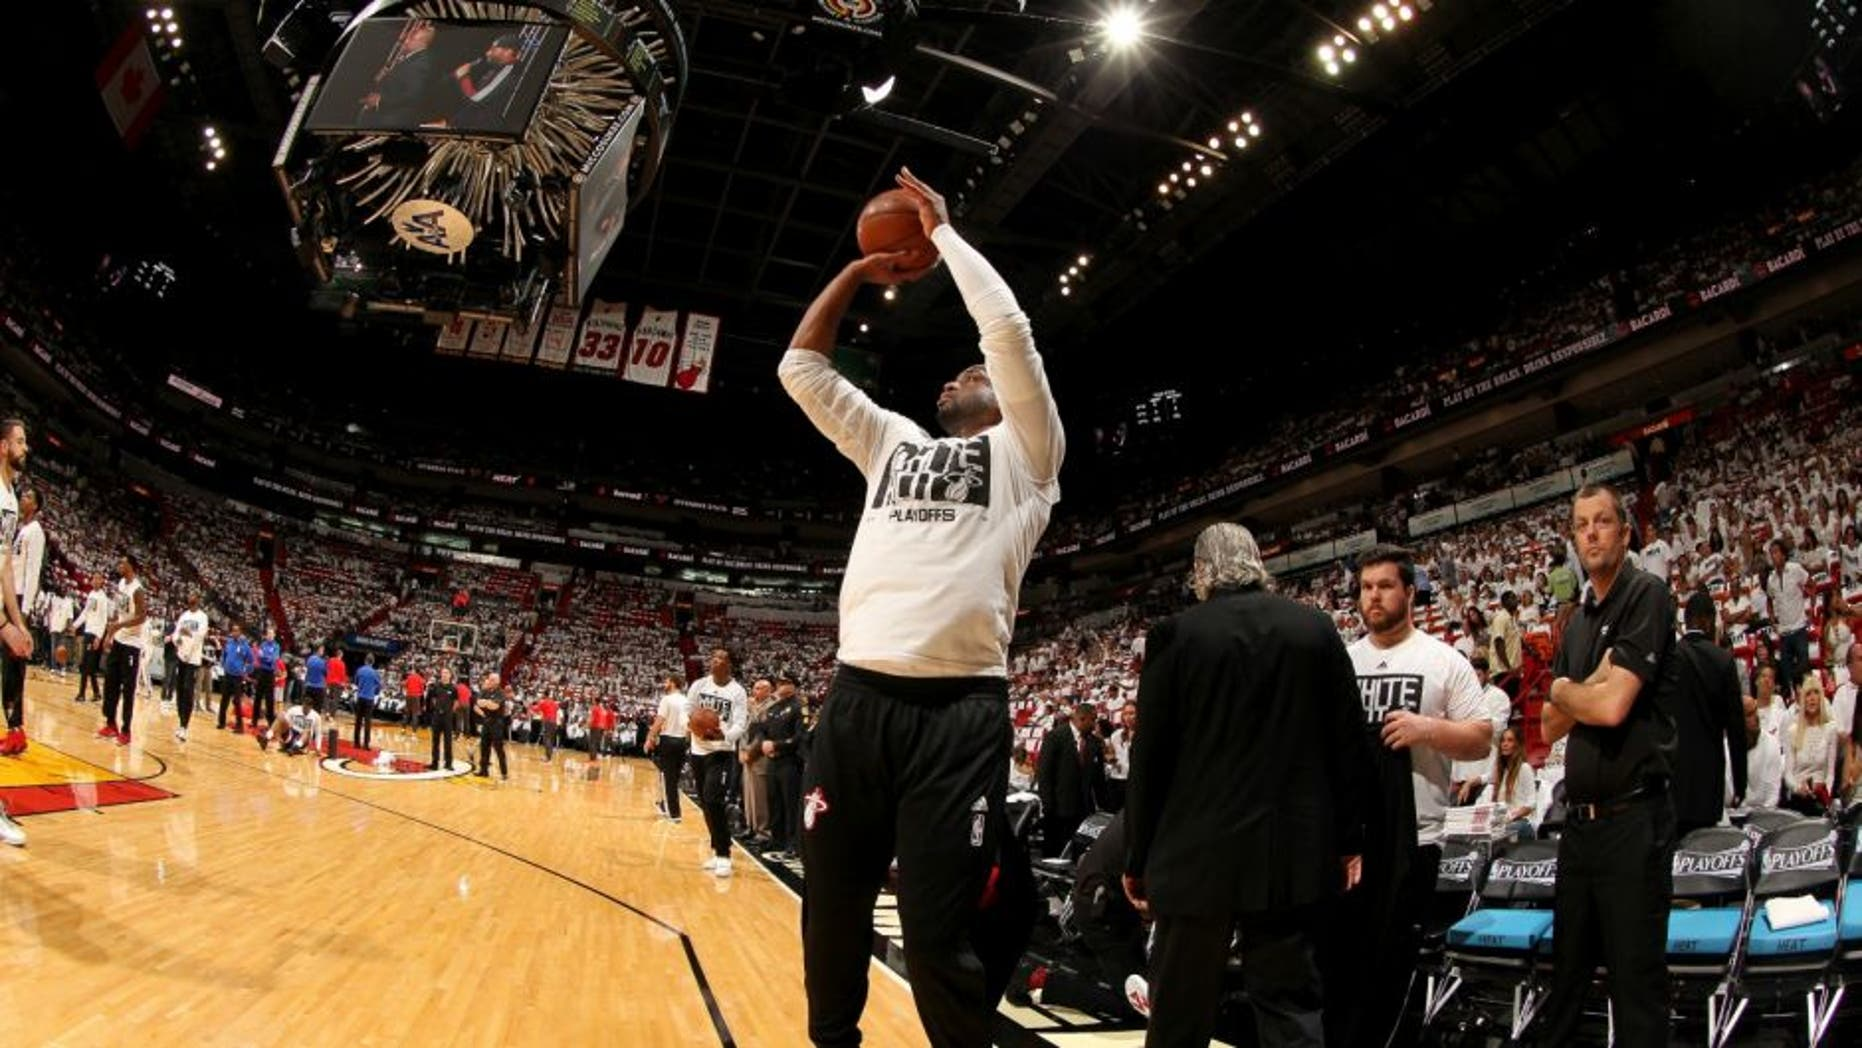 Miami Heat star Dwyane Wade warms up before the game against the Toronto Raptors in Game Three of the Eastern Conference Semifinals. (Photo by Issac Baldizon/NBAE via Getty Images)